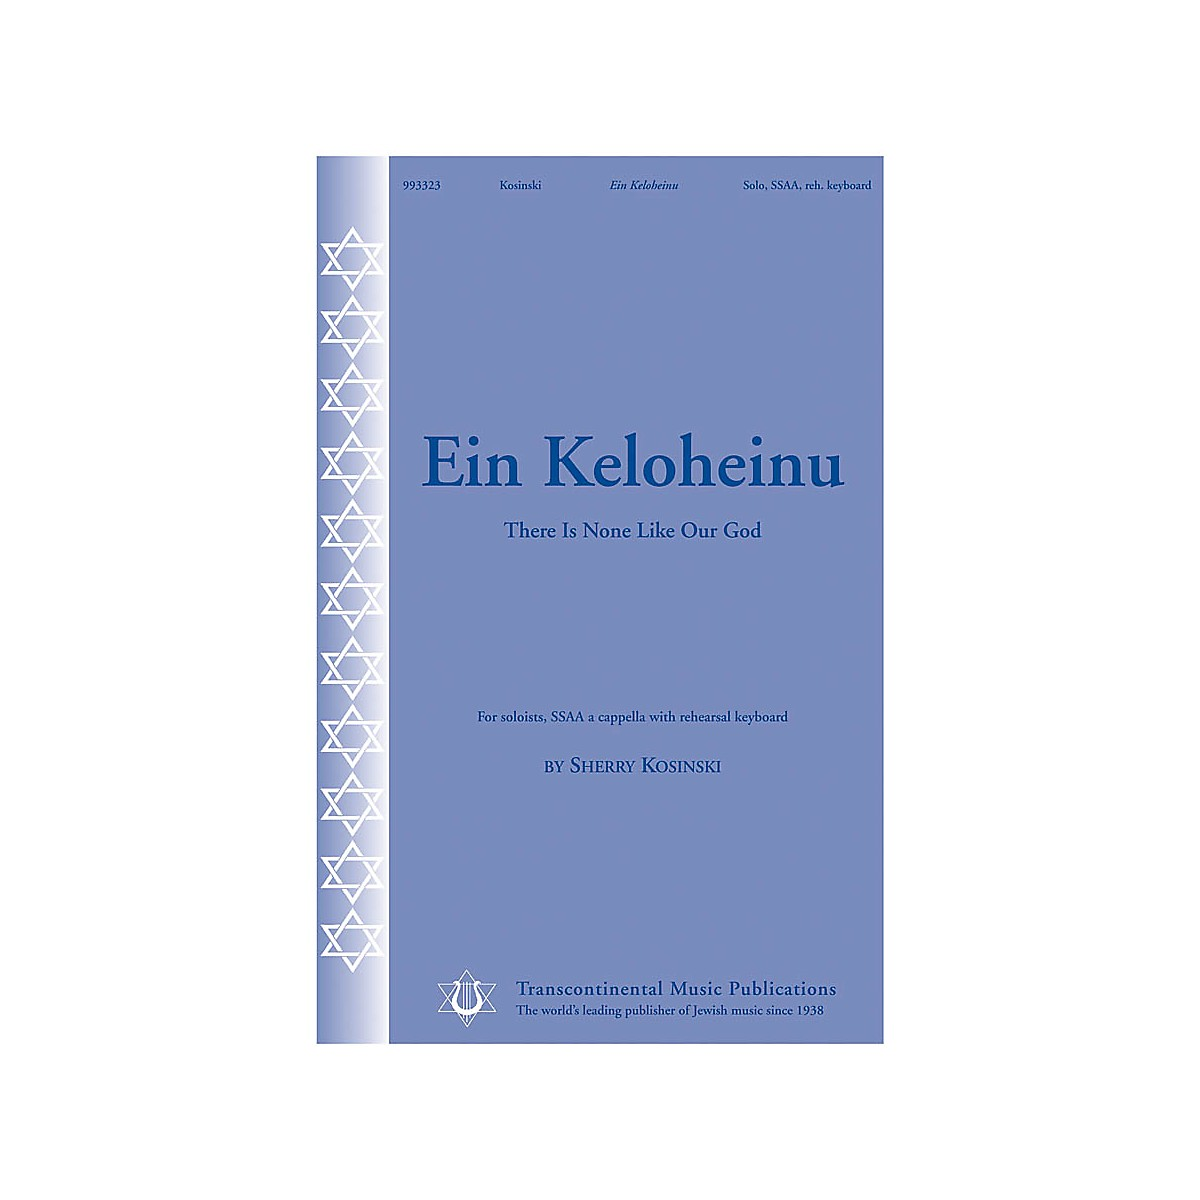 Transcontinental Music Ein Keloheinu (There Is None Like Our God) SSAA A Cappella composed by Sherry Kosinksi